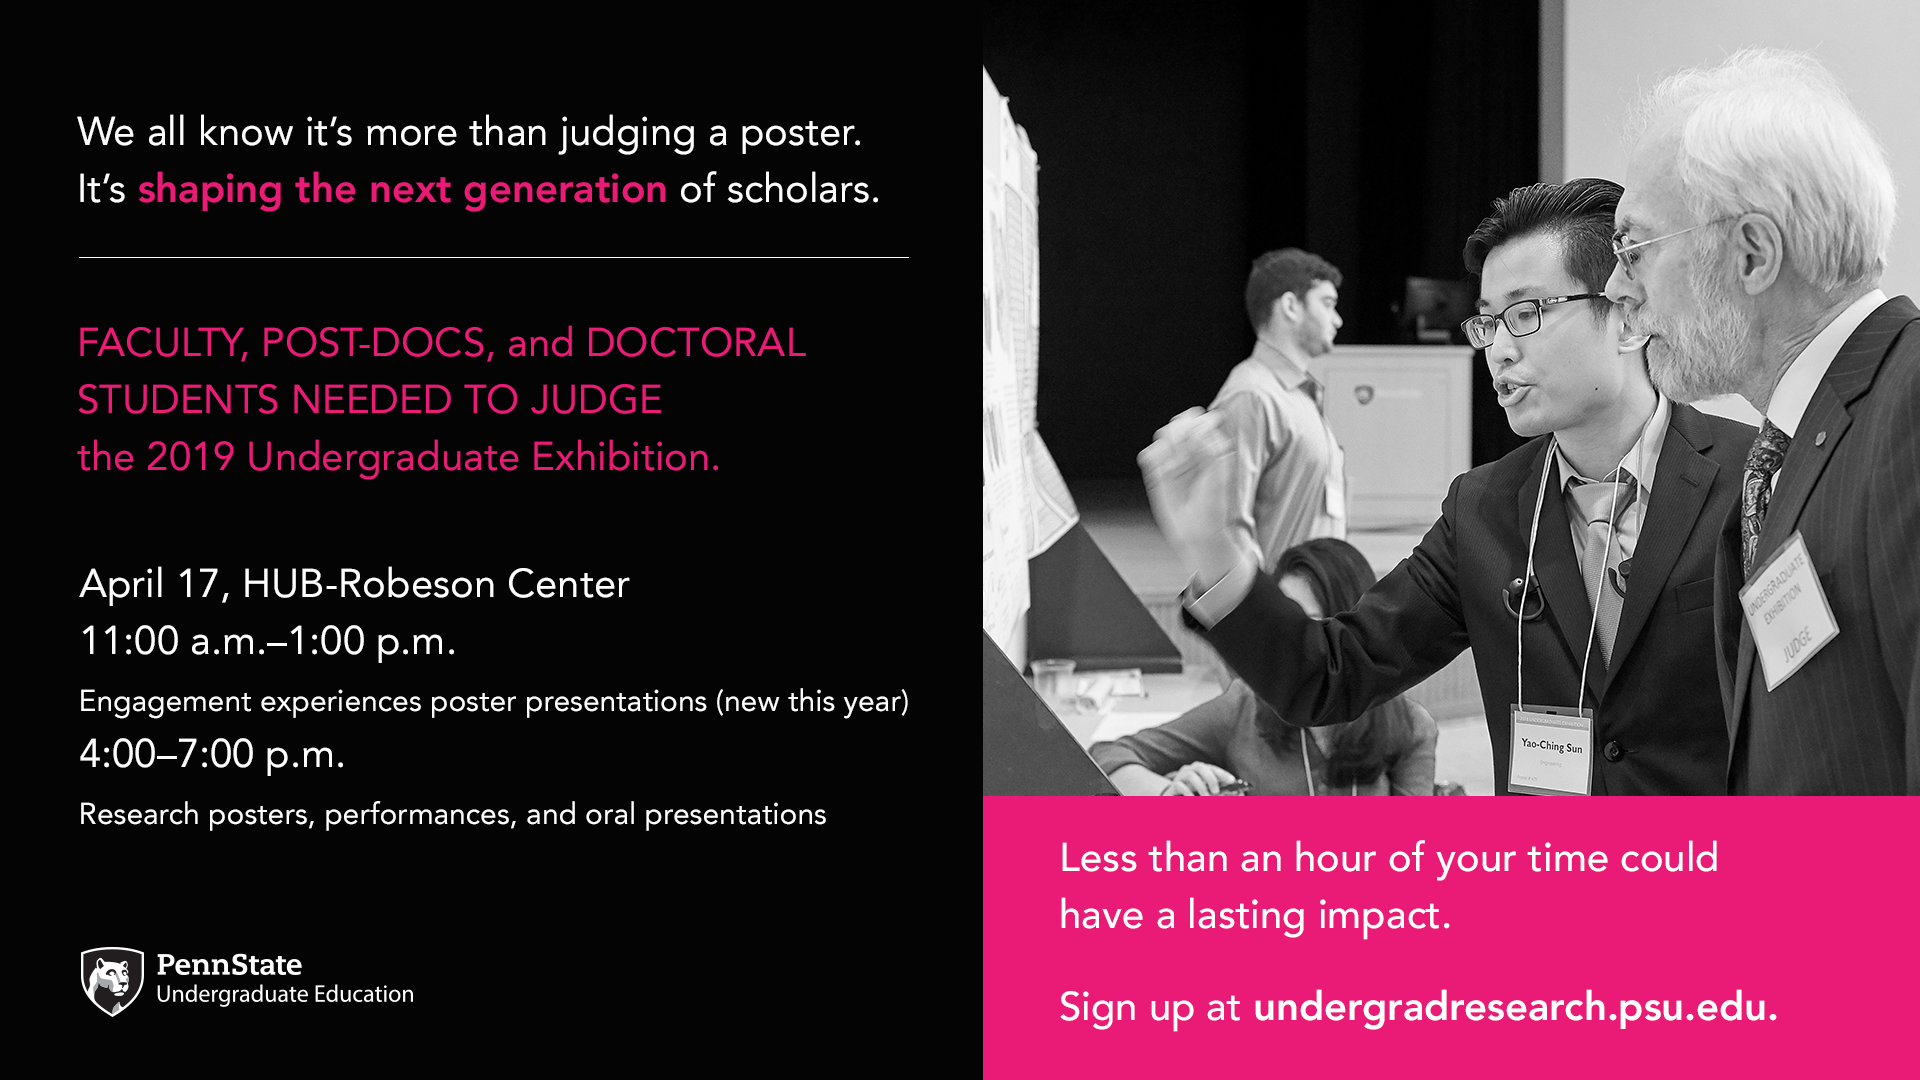 Faculty, Postdocs and Doctoral Students needed to judge Undergraduate research exhibition. Click to register as a judge.